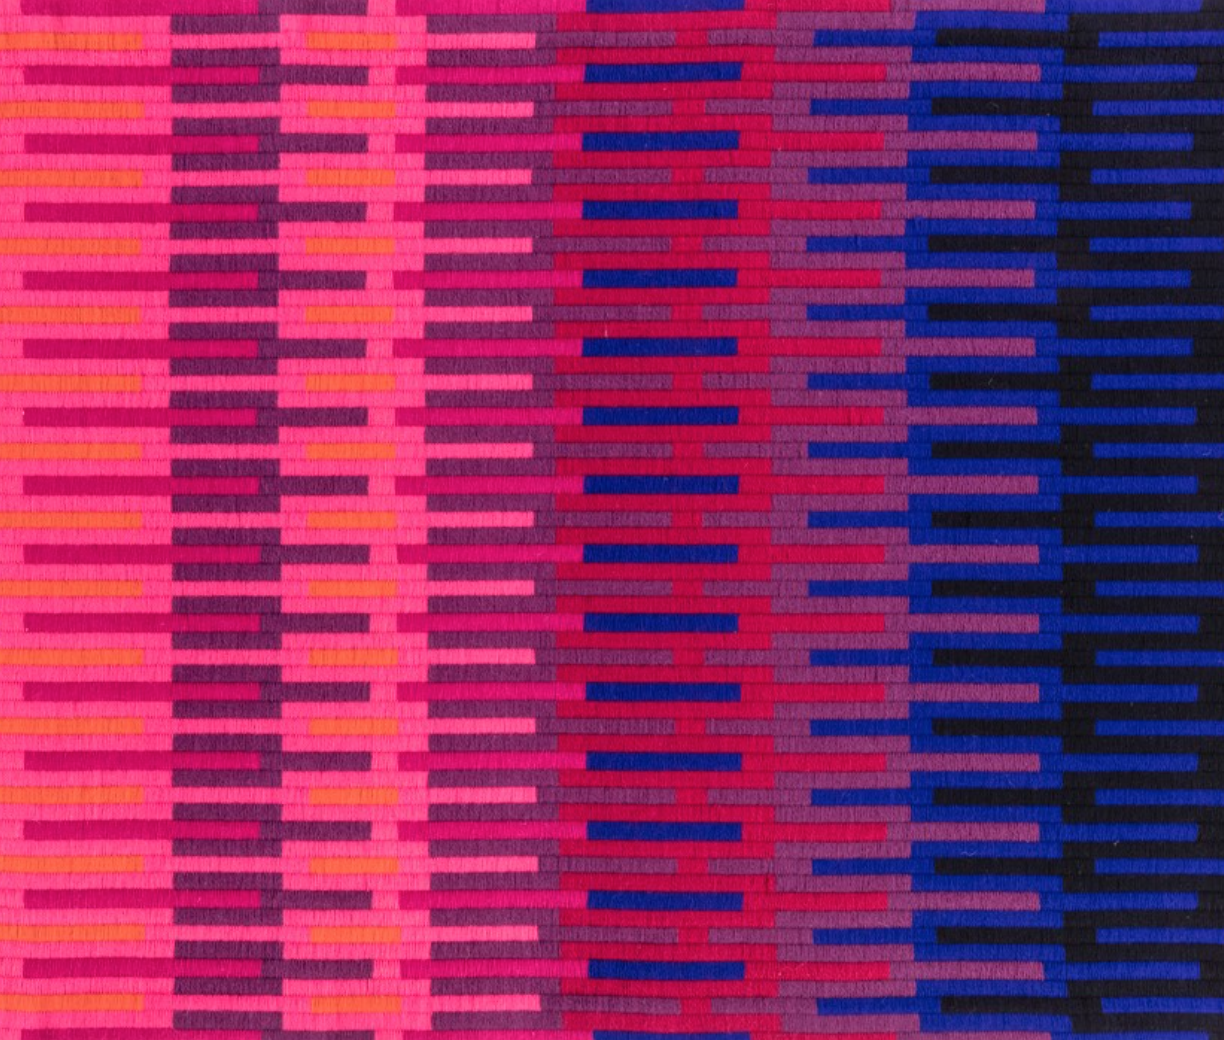 Wool wall hanging by Velta Vilsons (1965-1970). I could use this as inspiration for one of my paintings for sure. The striking pattern and bold pops of colour are stunning!